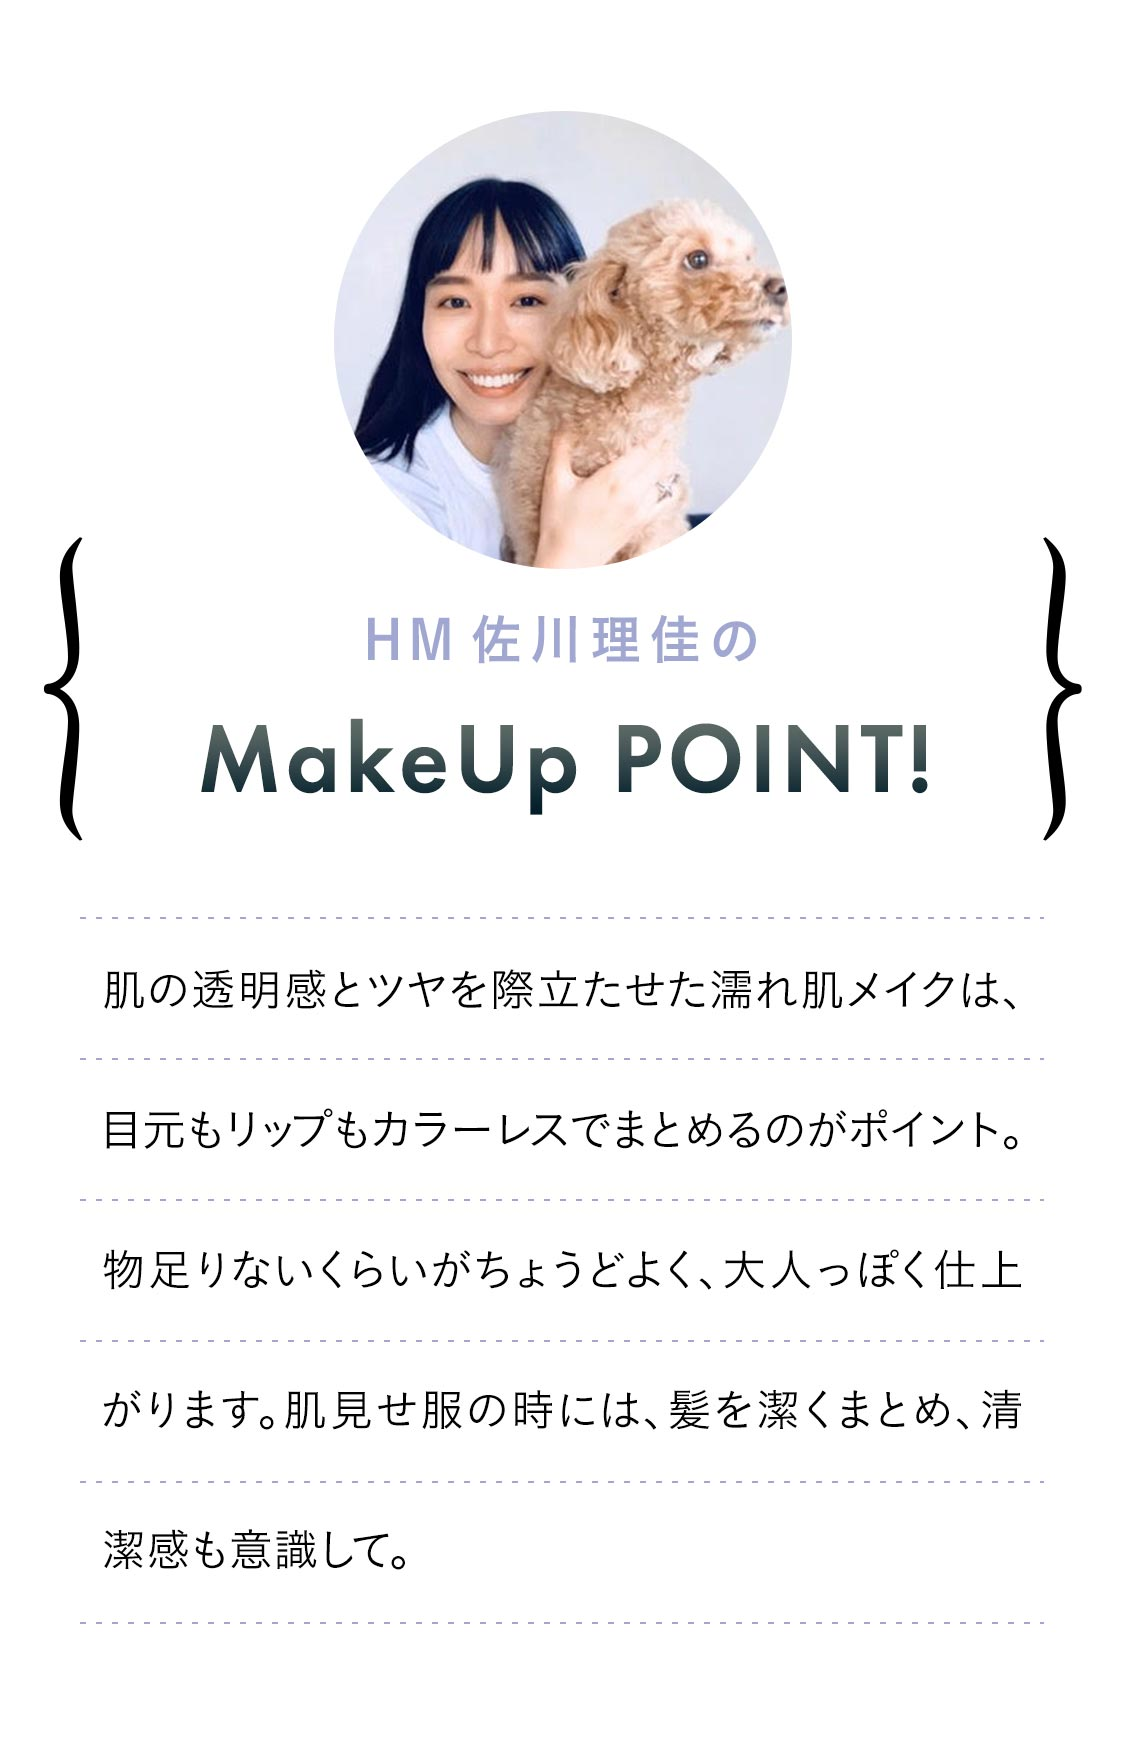 RIKA SAGAWA'S MAKEUP POINT